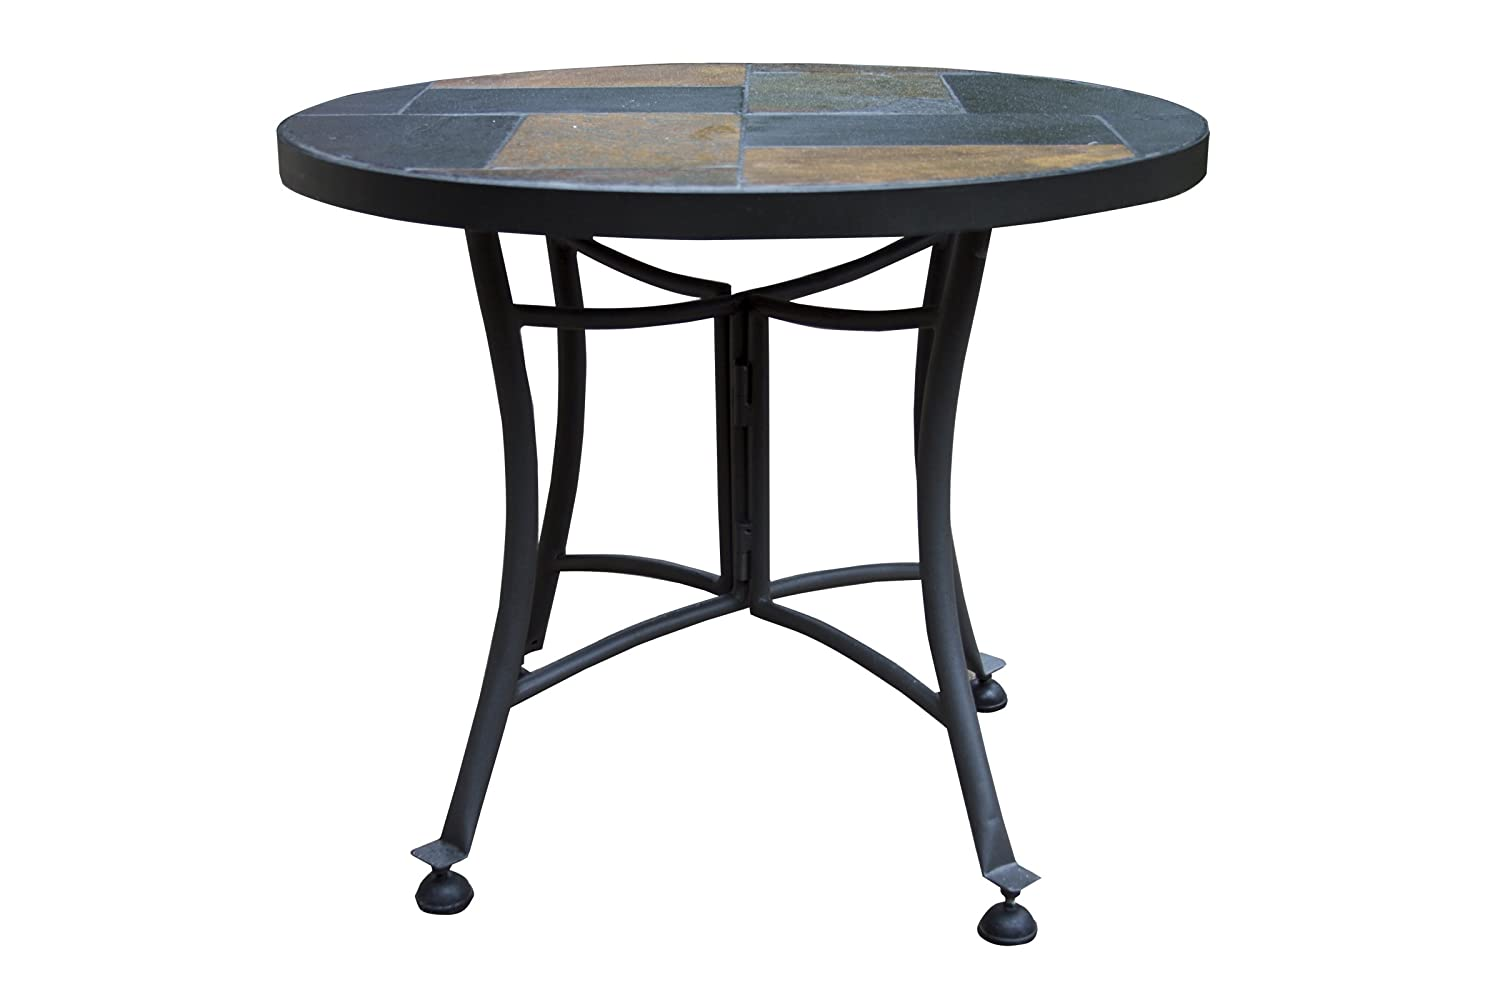 Outdoor Interiors Slate Mosaic Accent Table with Metal Base, 24-Inch, Charcoal